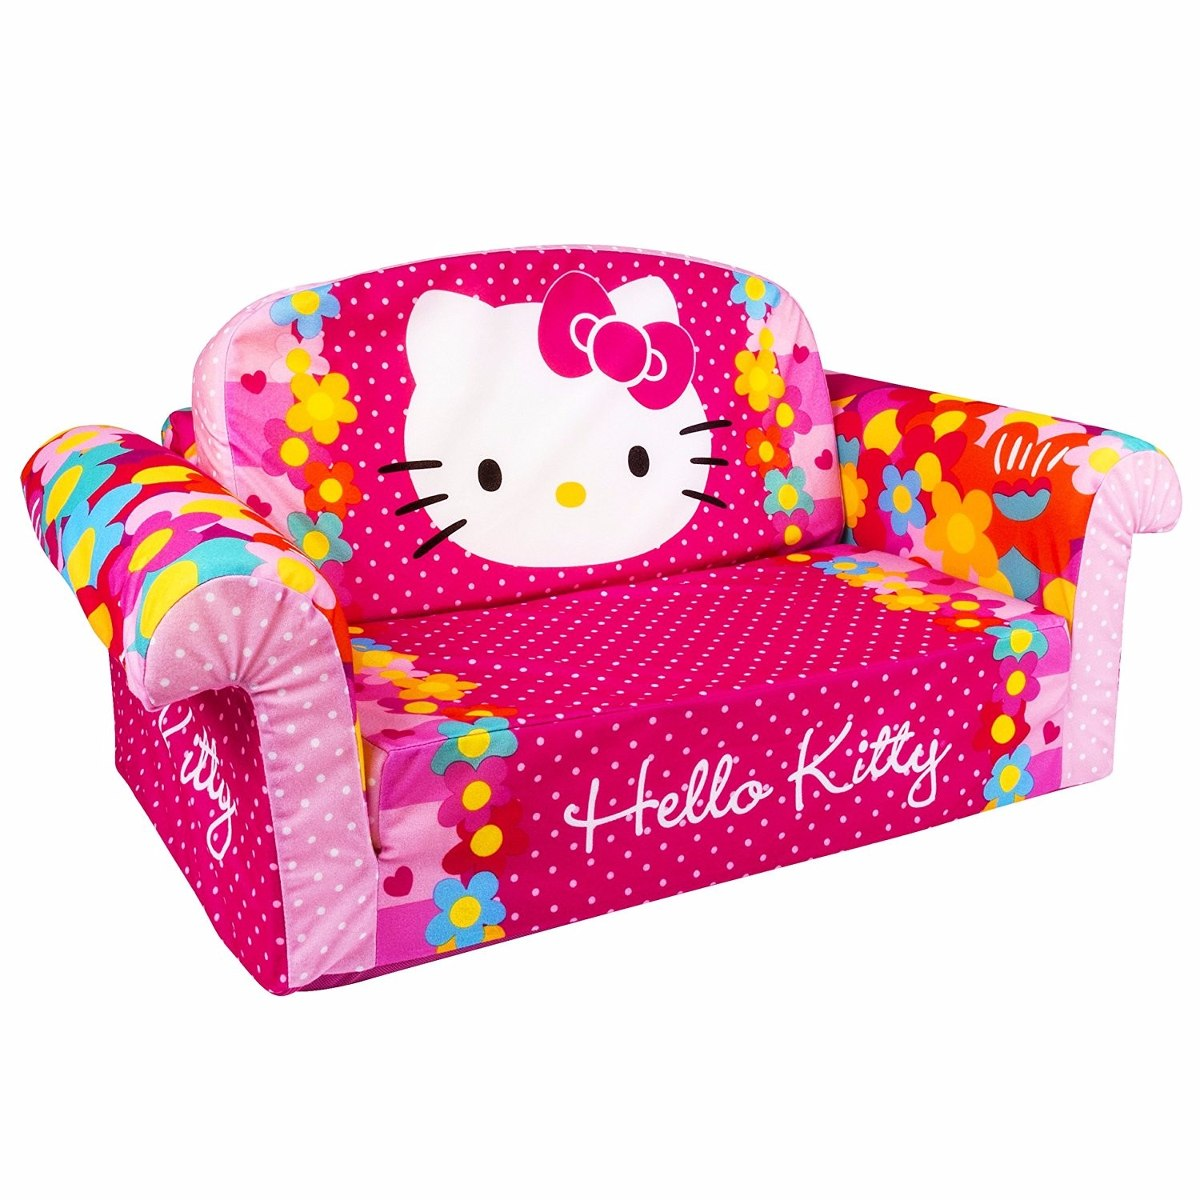 Sillon Infantil Sofa Cama Hello Kitty Ni 241 A Juguete